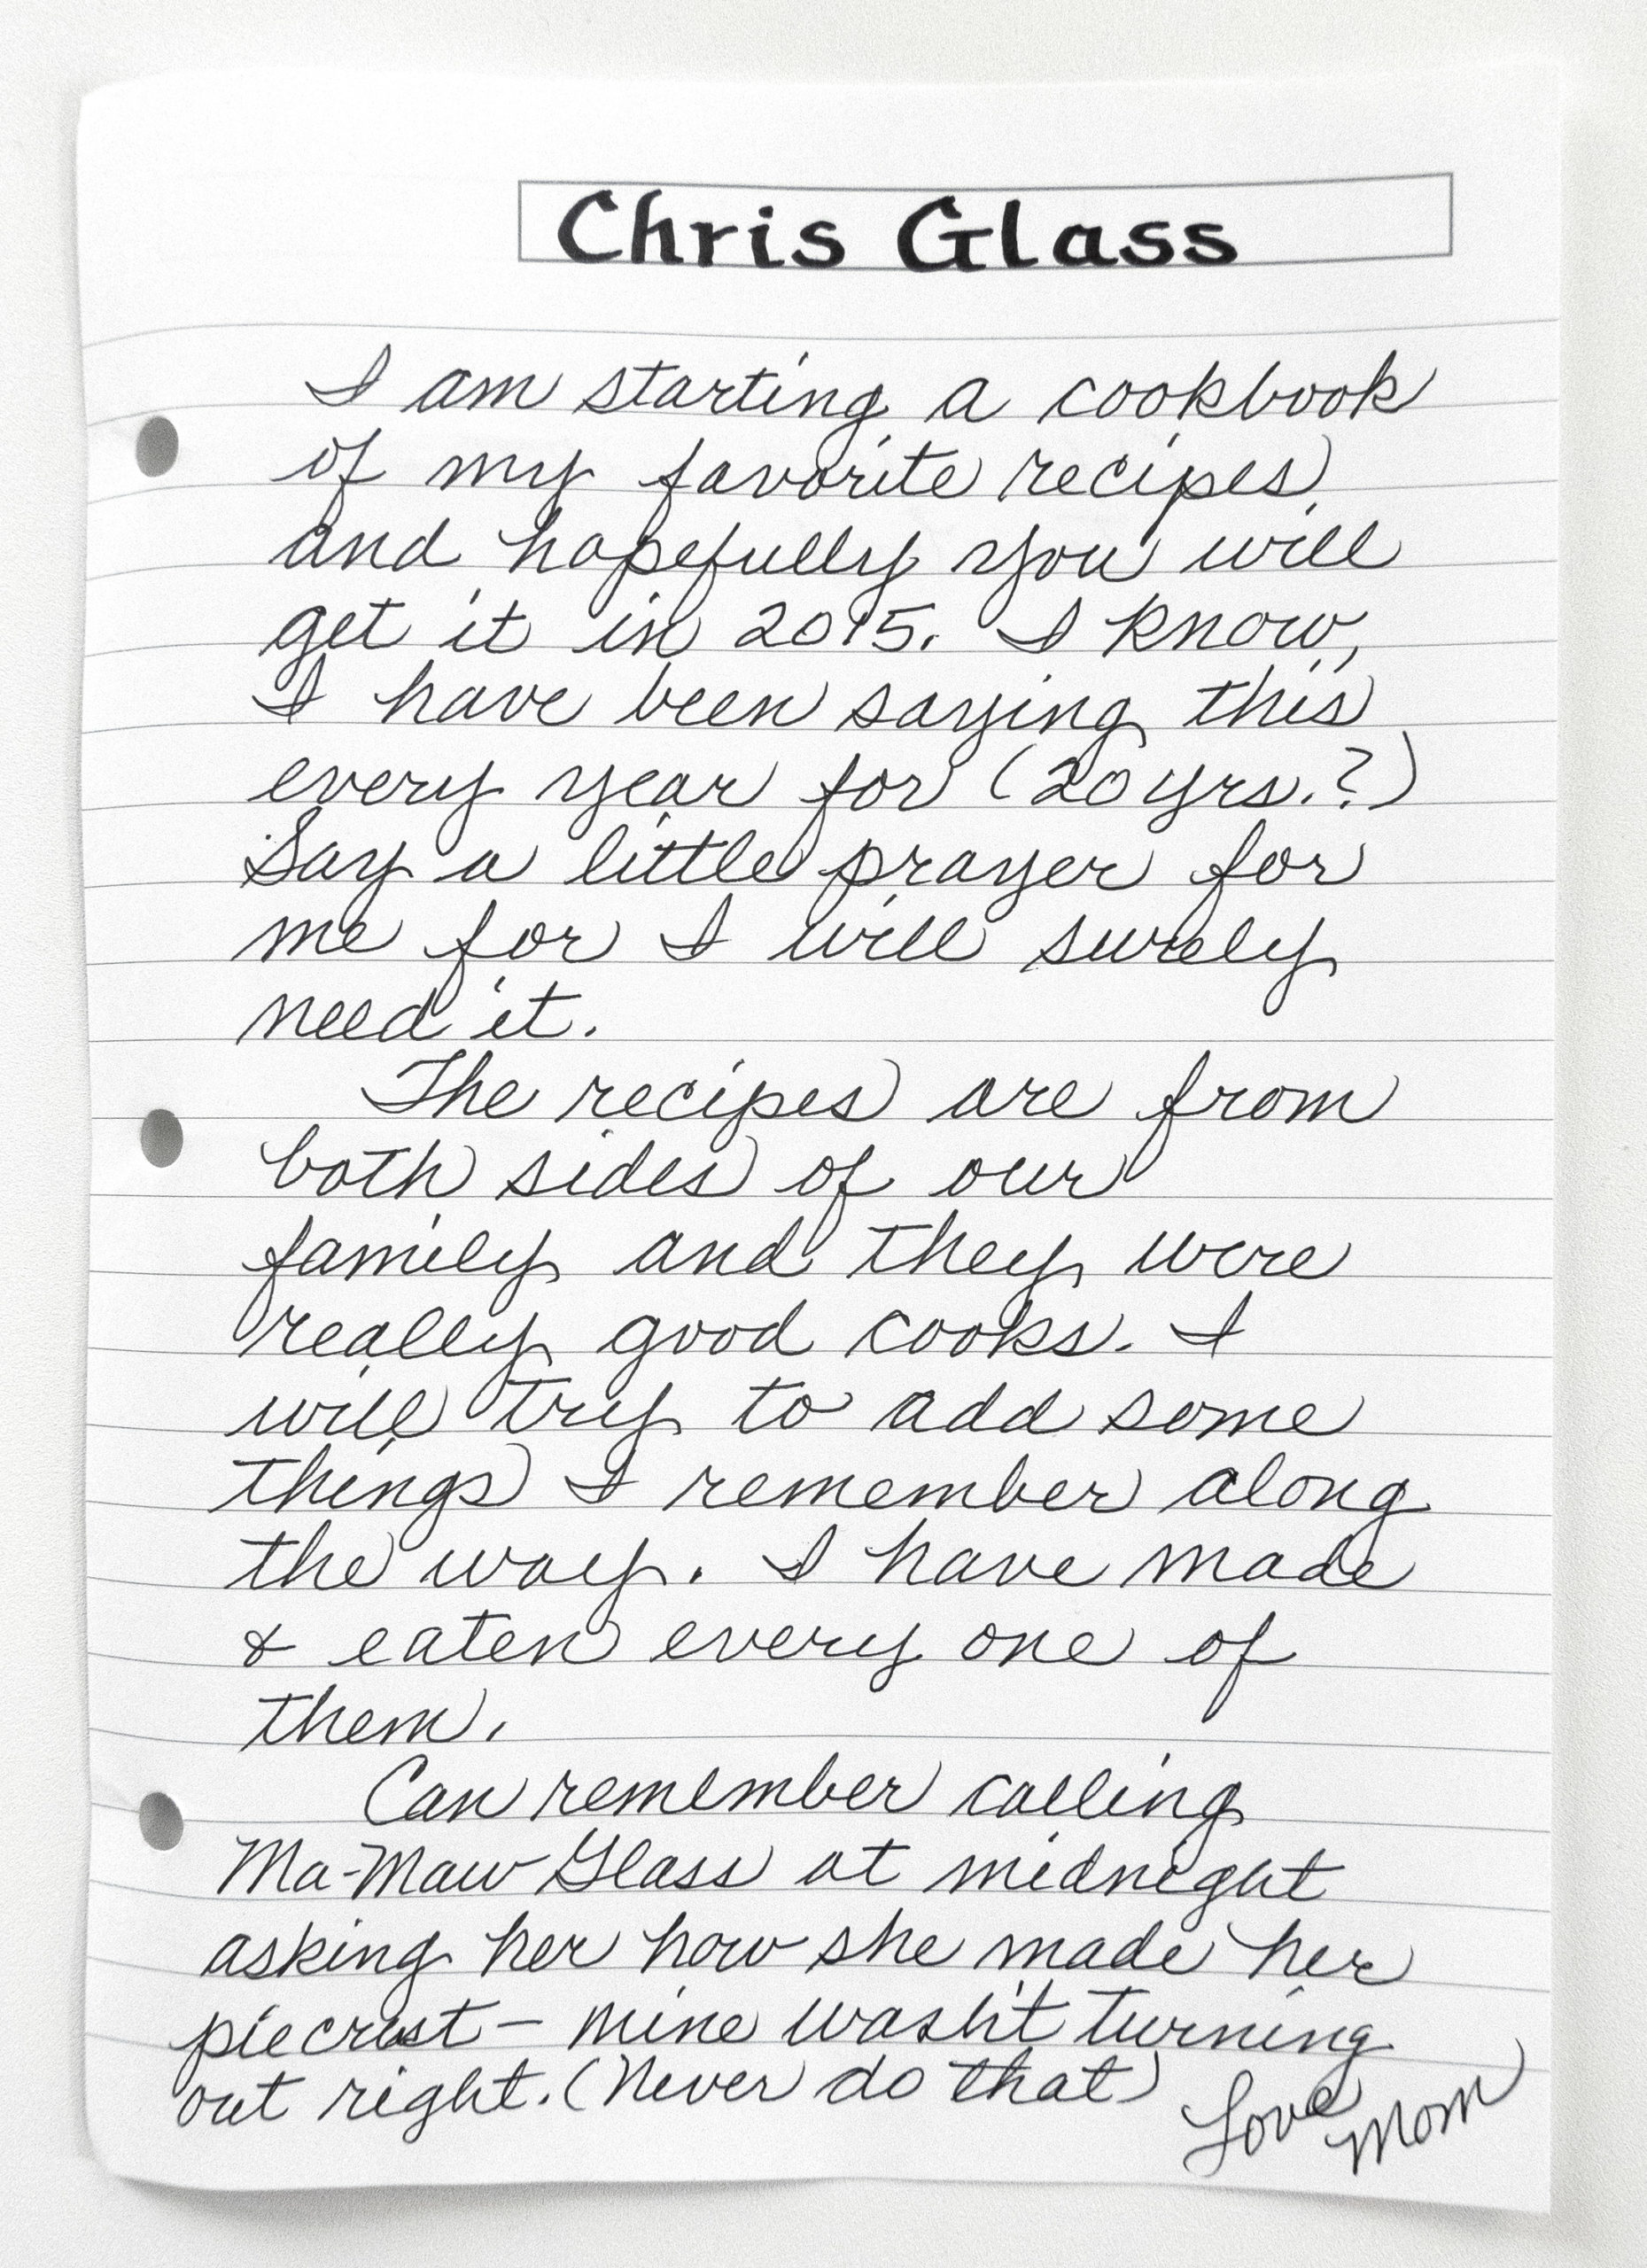 introduction to family cookbook handwritten